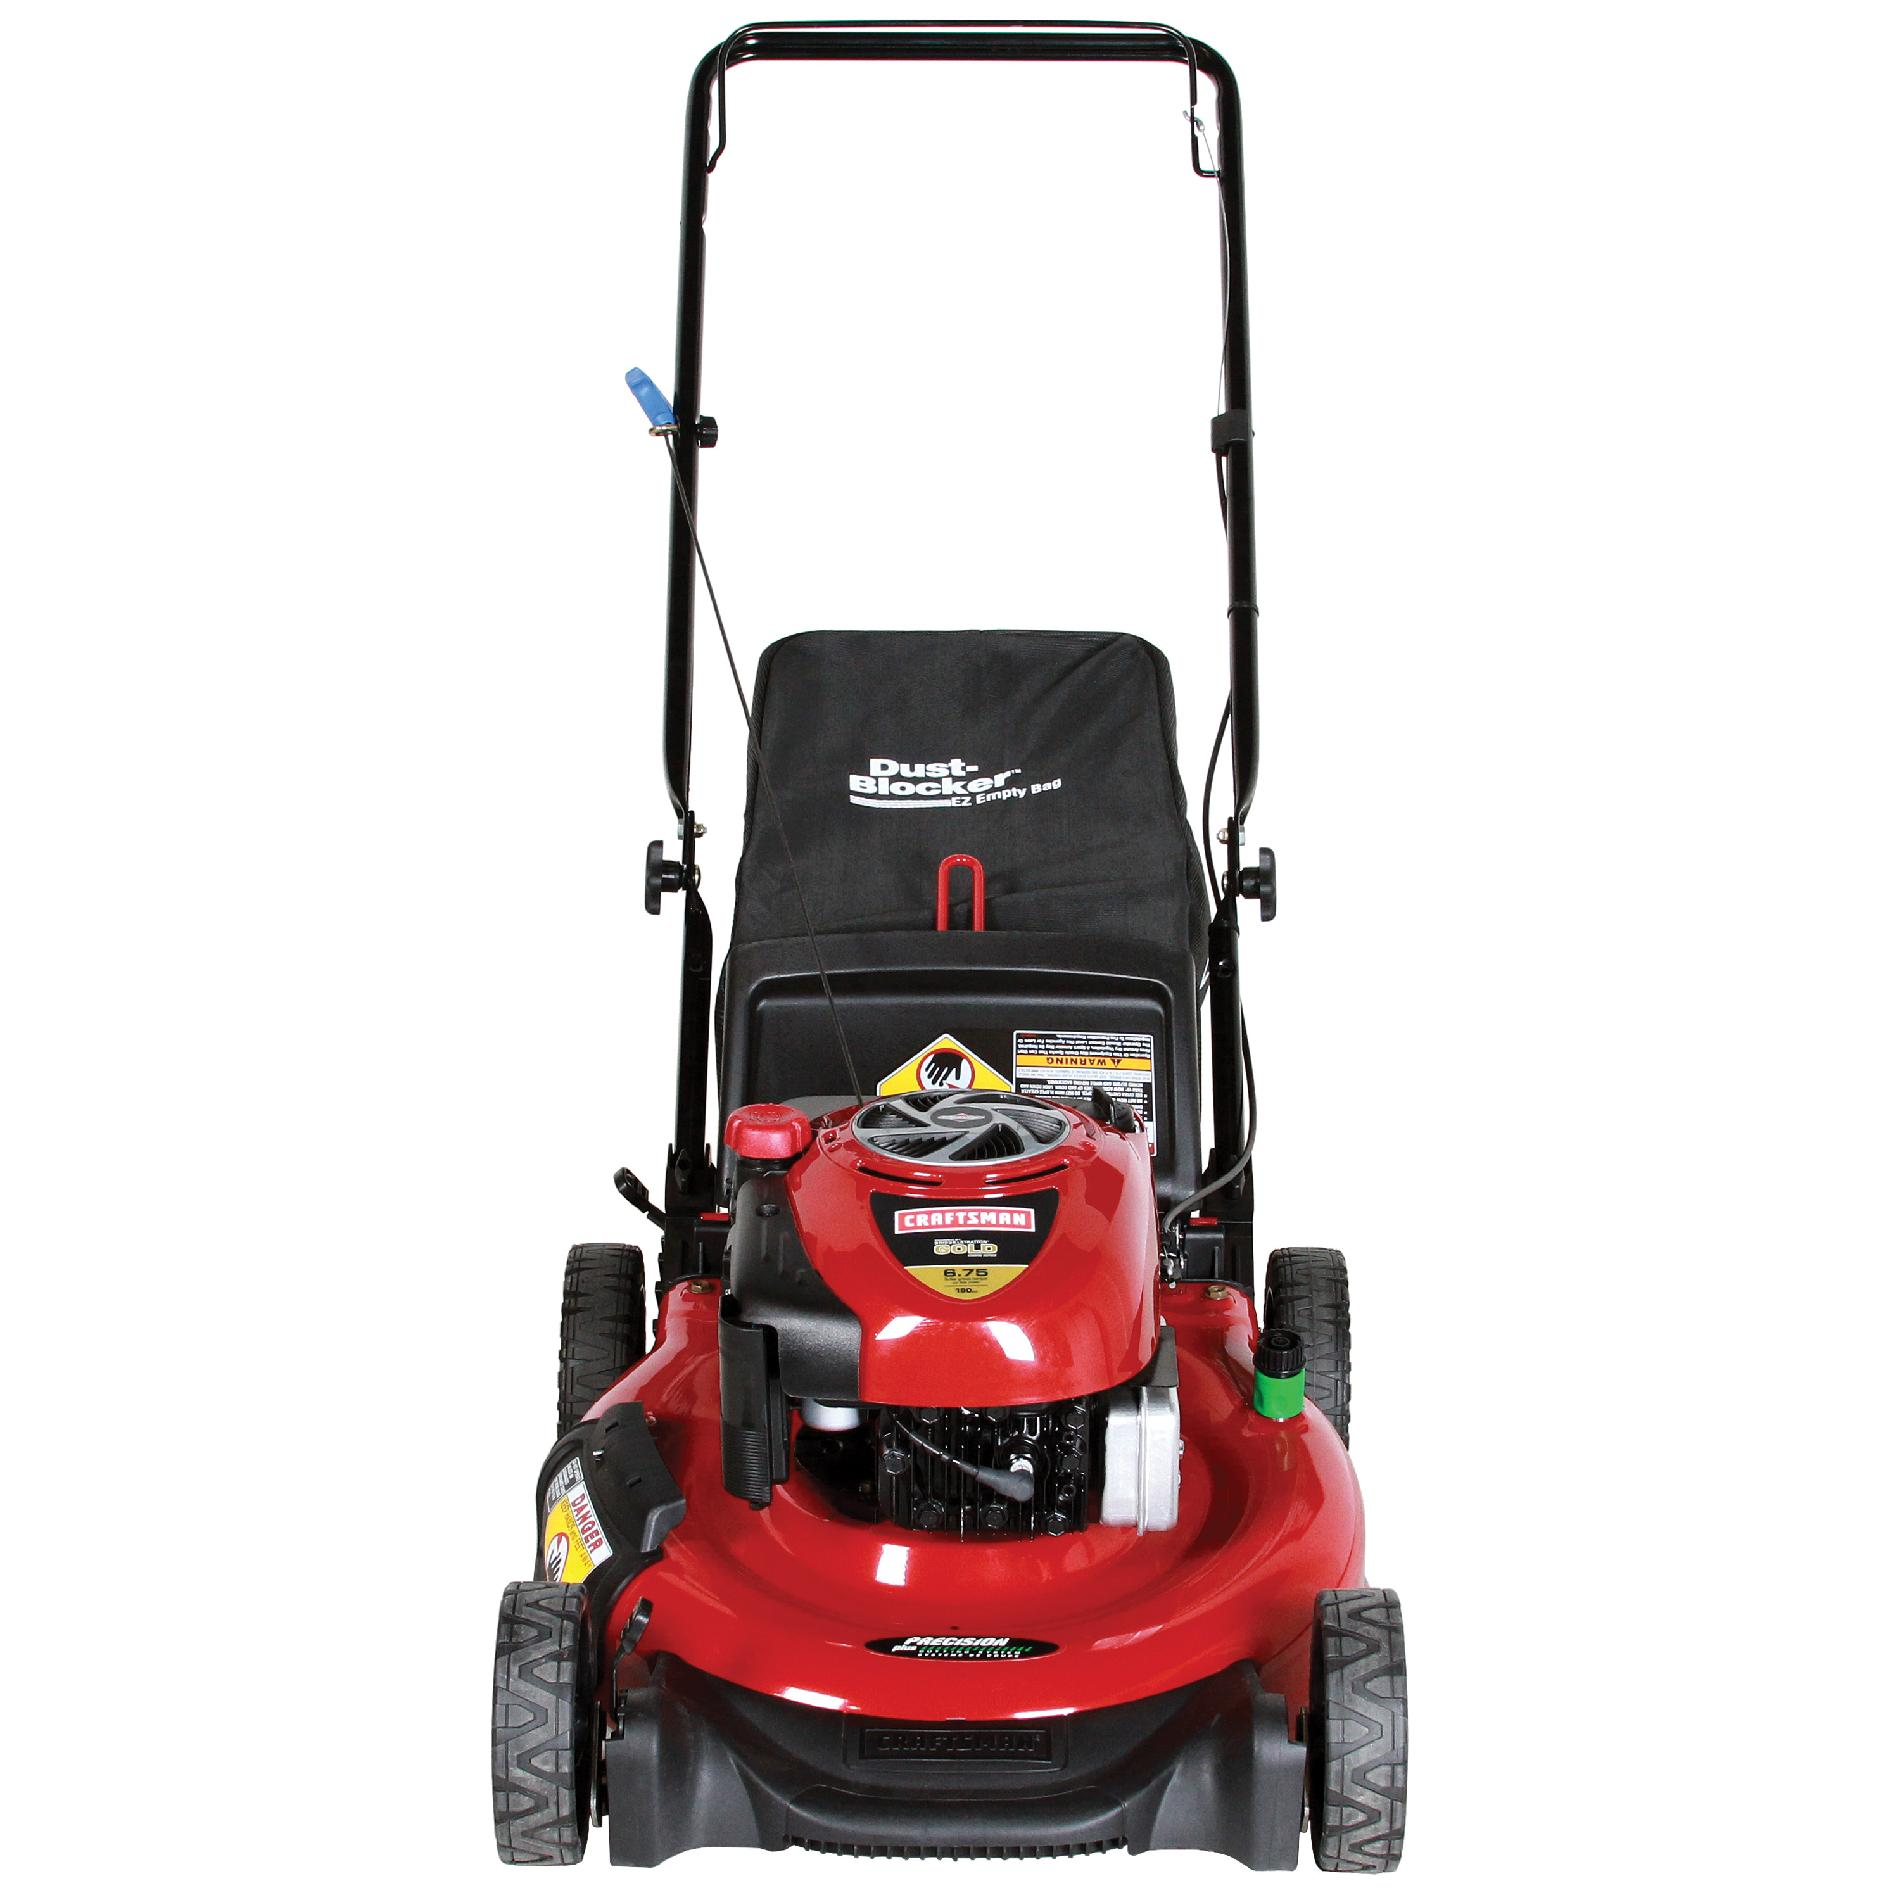 Craftsman 190cc* Briggs & Stratton Engine, Low-Wheel Rear Bag Push Mower 50 States